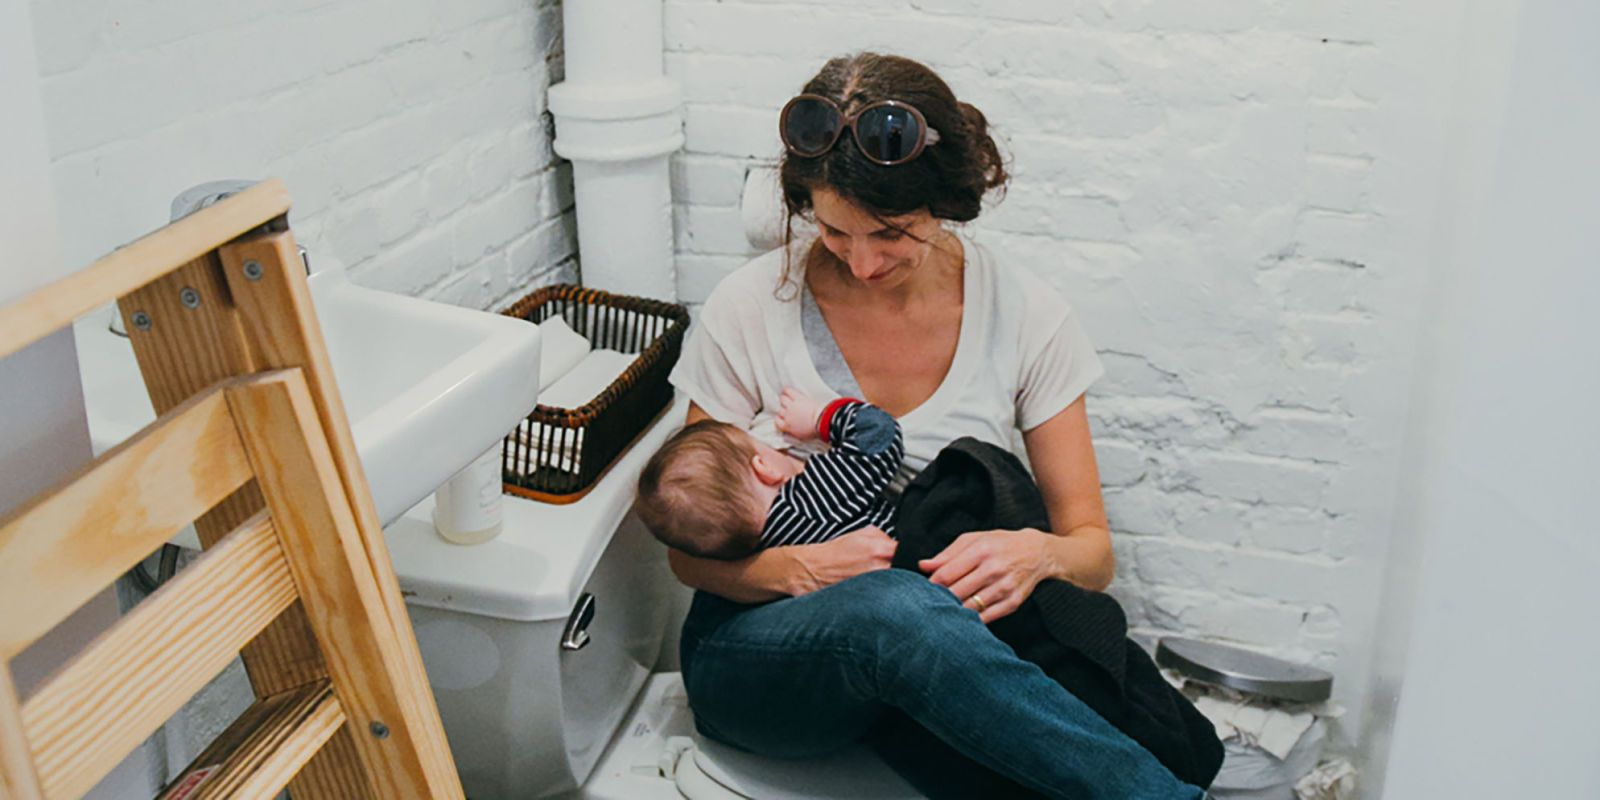 These Photos Show Exactly Where Women End Up Breastfeeding